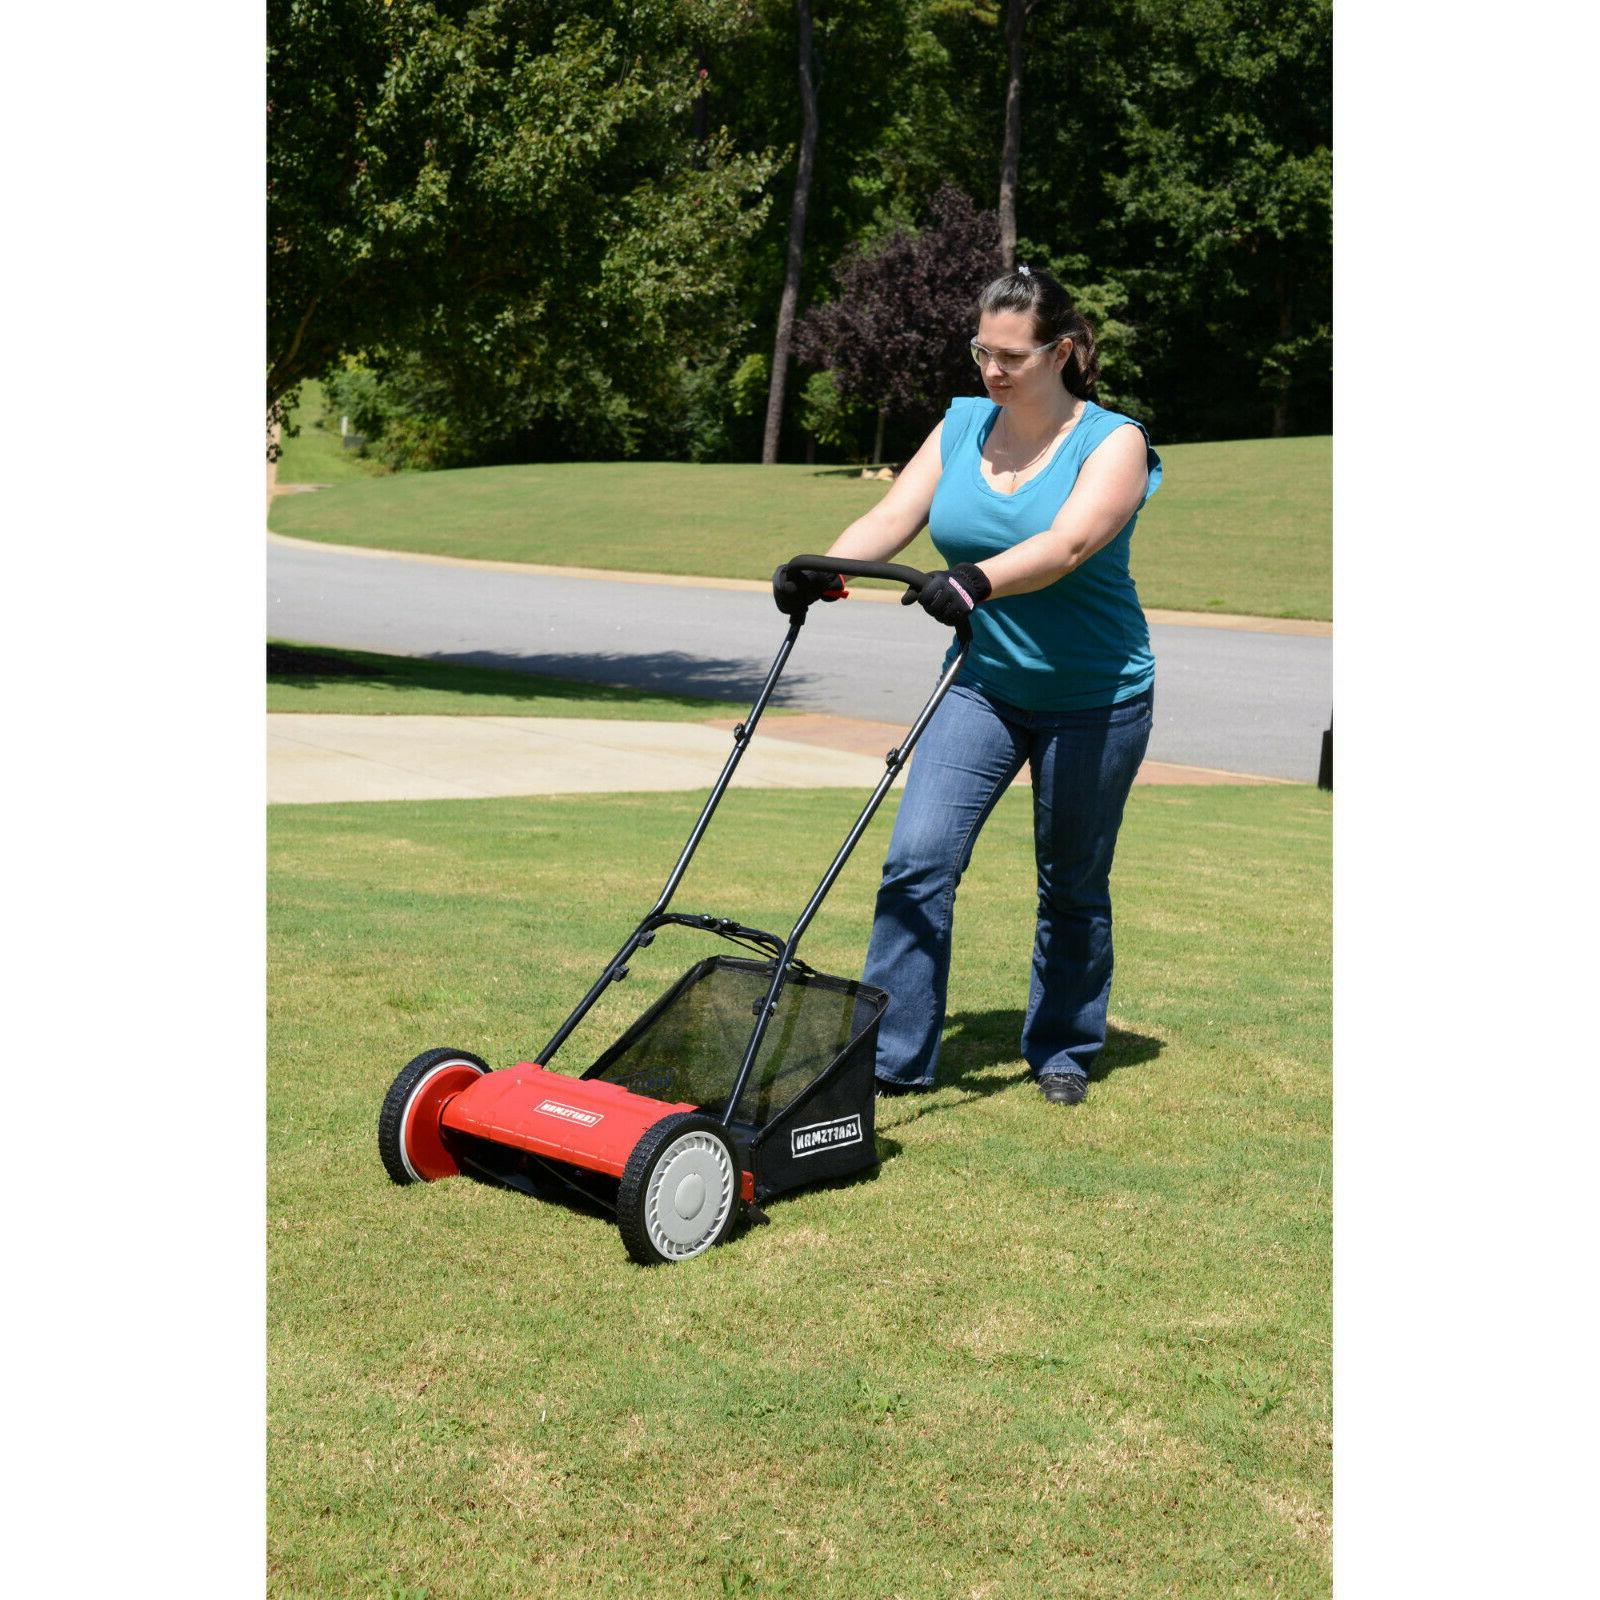 Craftsman Lawn Mower with Bag - Model - NEW